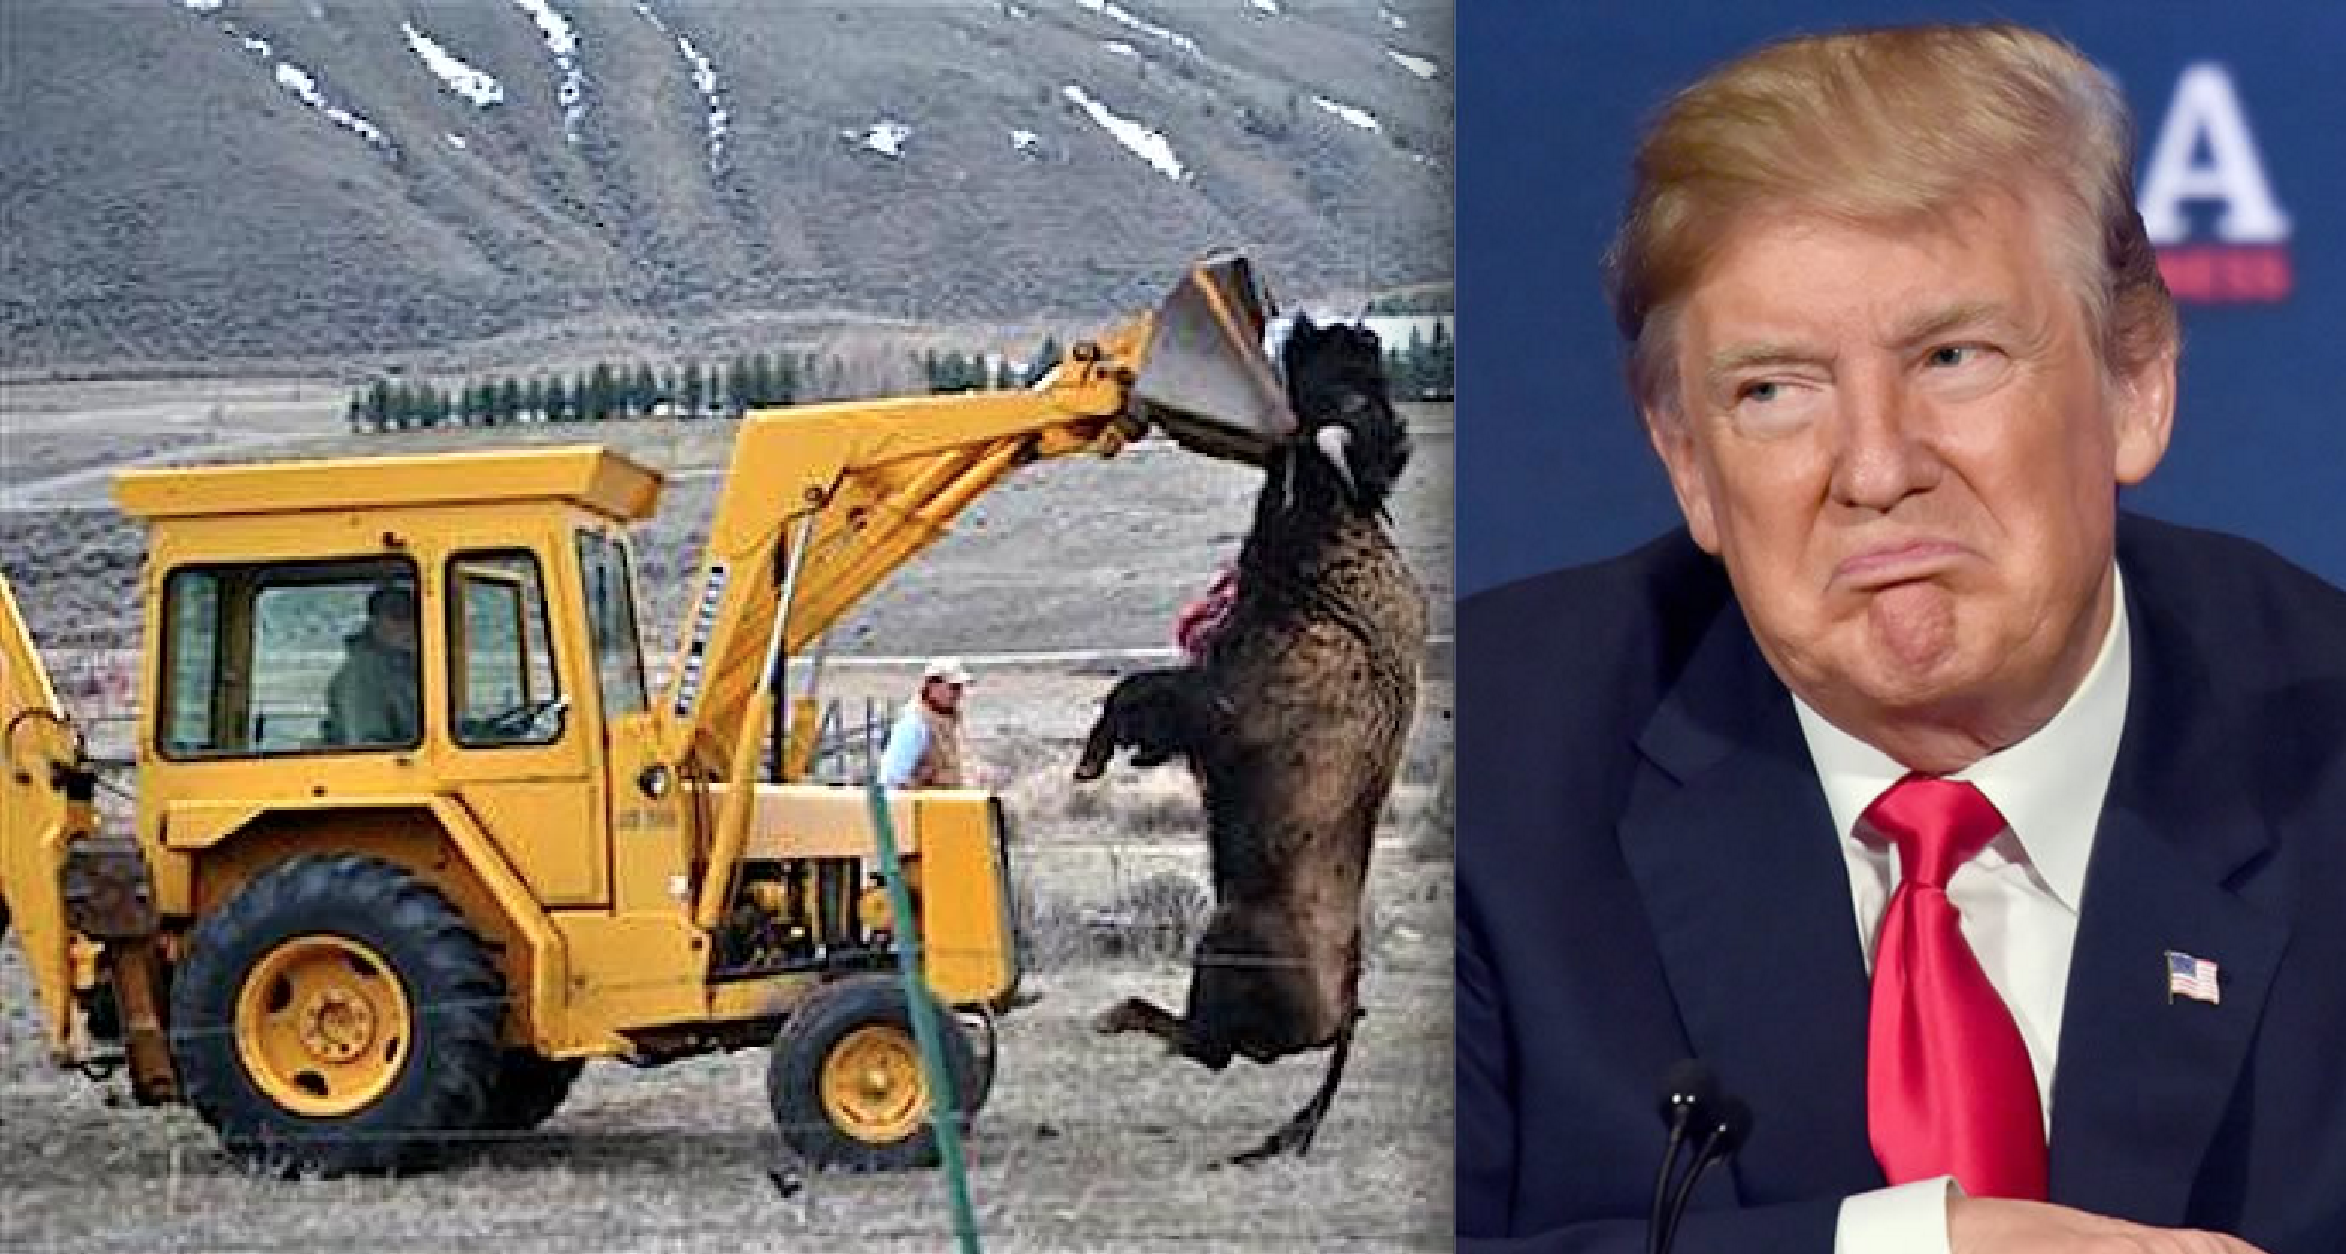 Trump Admin. Just Denied Yellowstone Bison Endangered Species Protection, Sparking Outrage